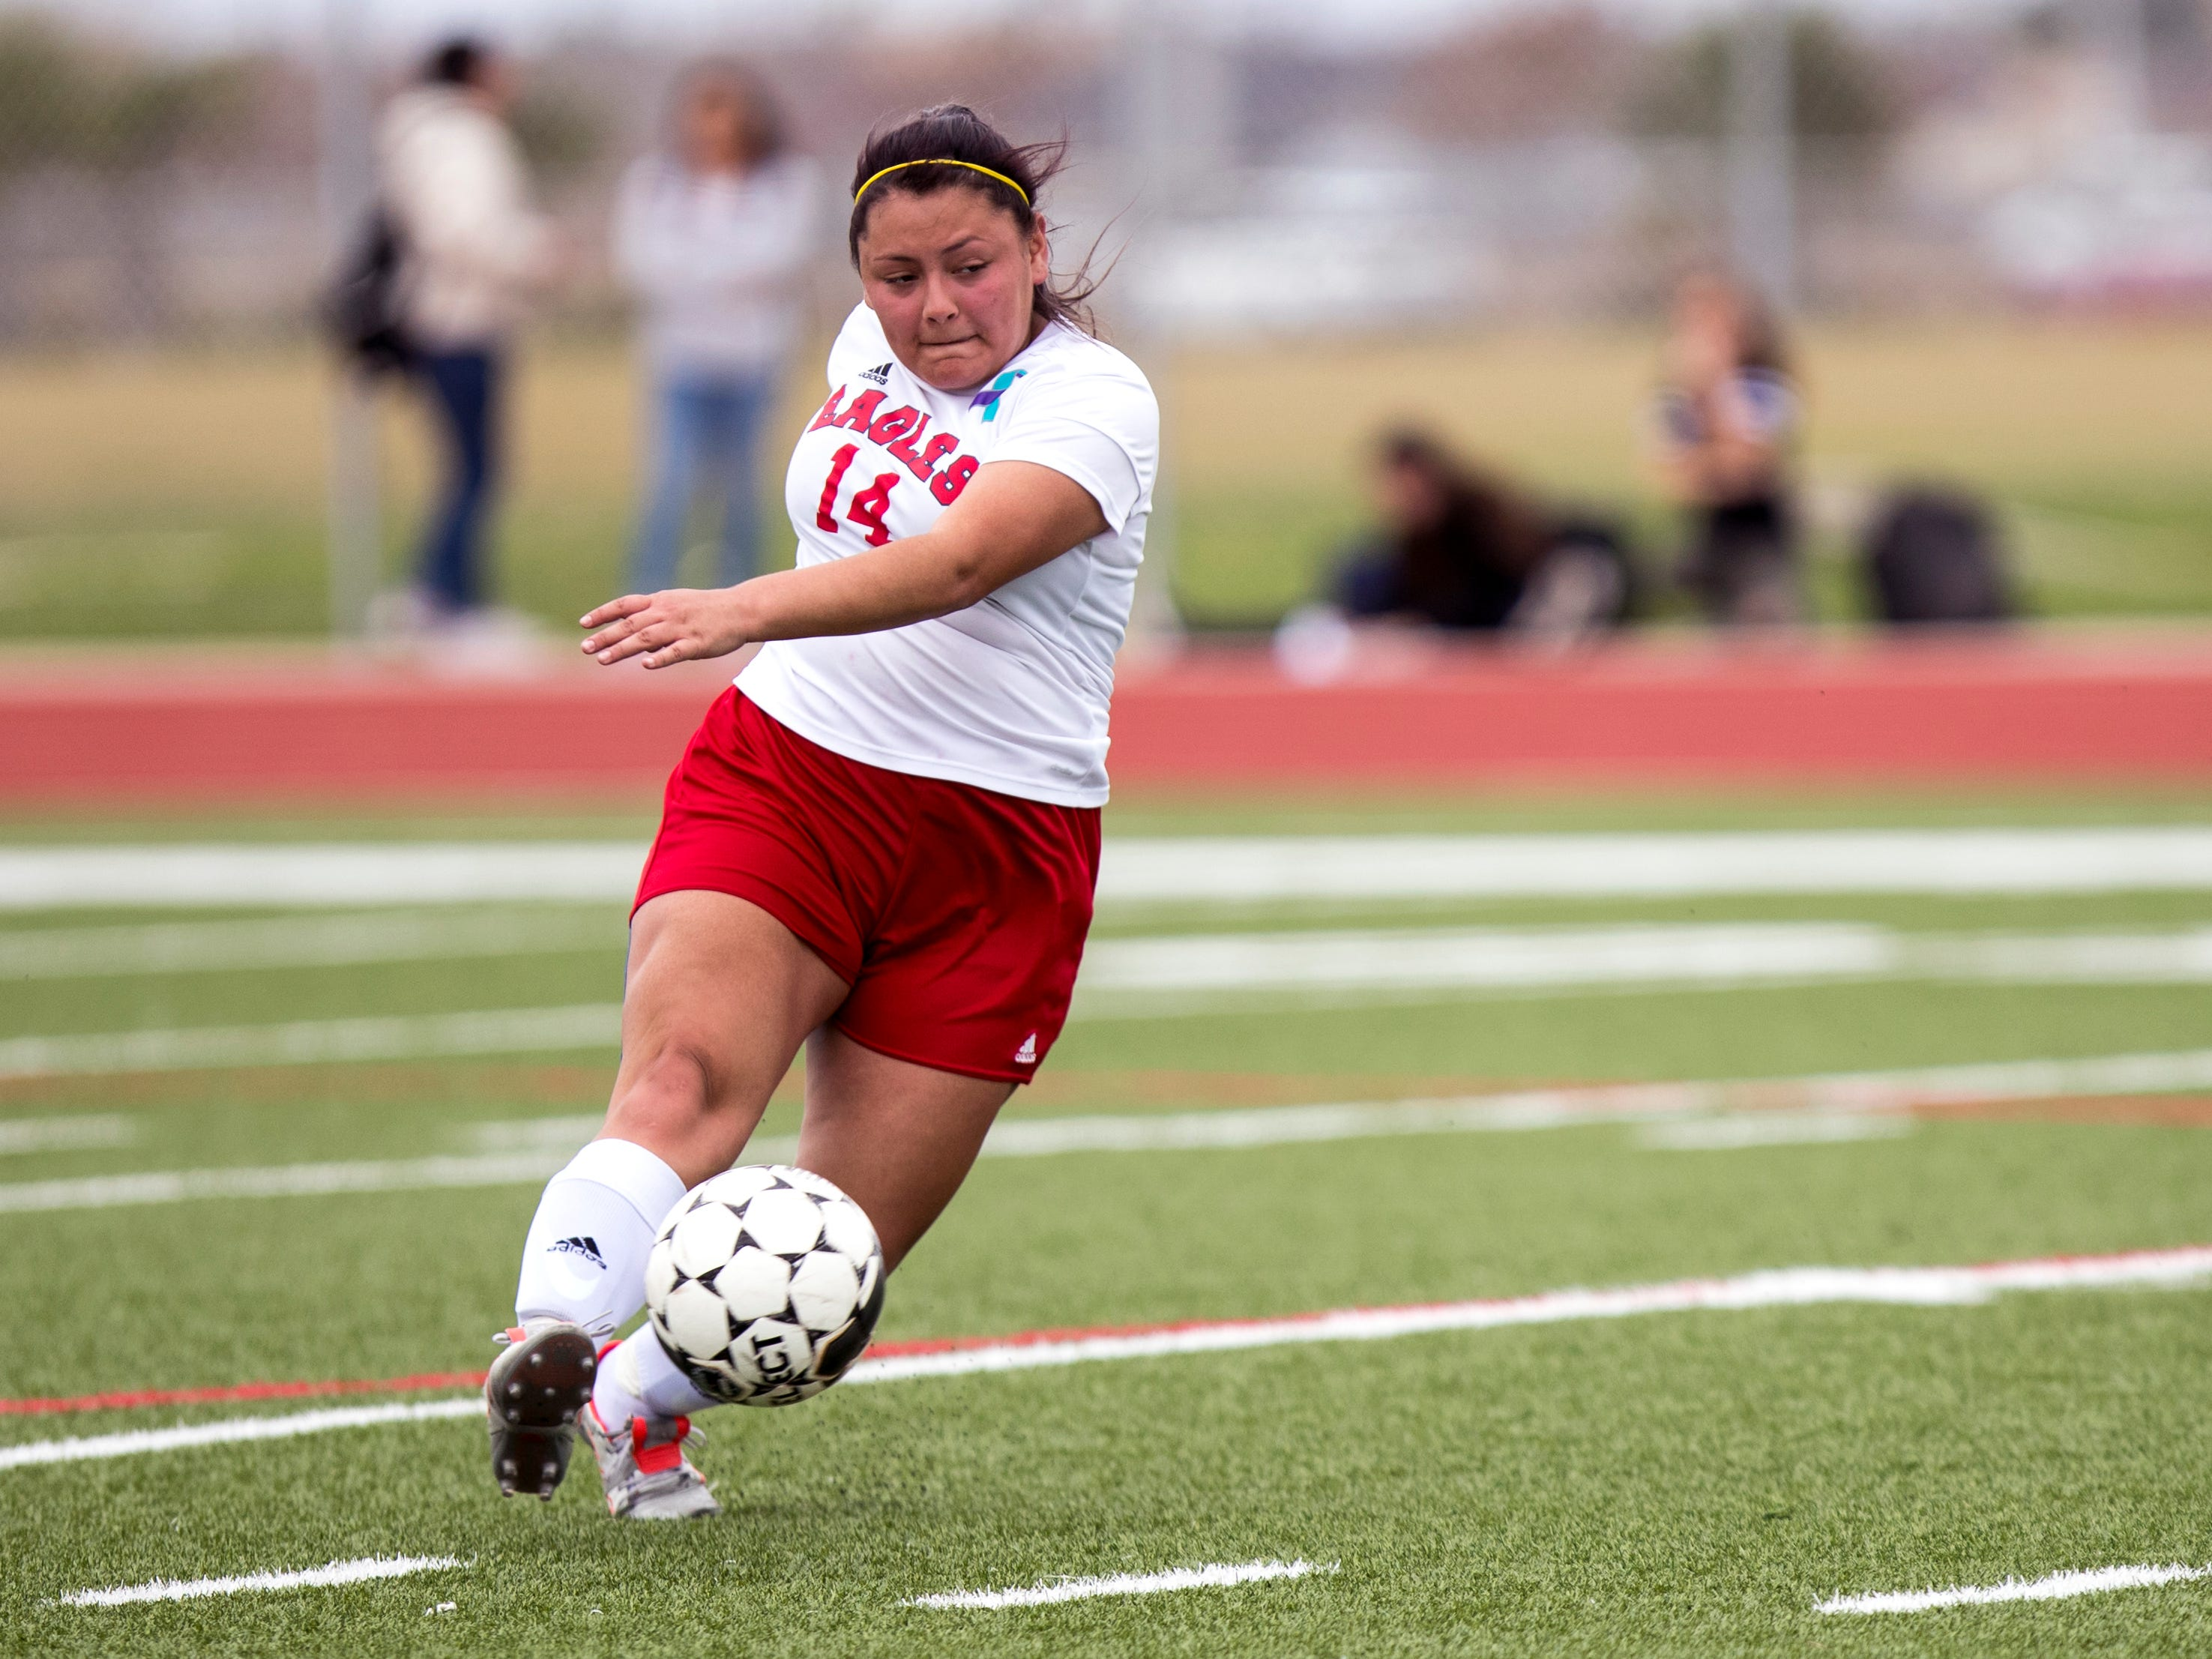 Veterans Memorial's Mauni Solis passes the ball in the game against Carroll in the Mira's Soccer Tournament at Veterans Memorial High School on Friday, January 11, 2019. The Eagles won the game 5-0.